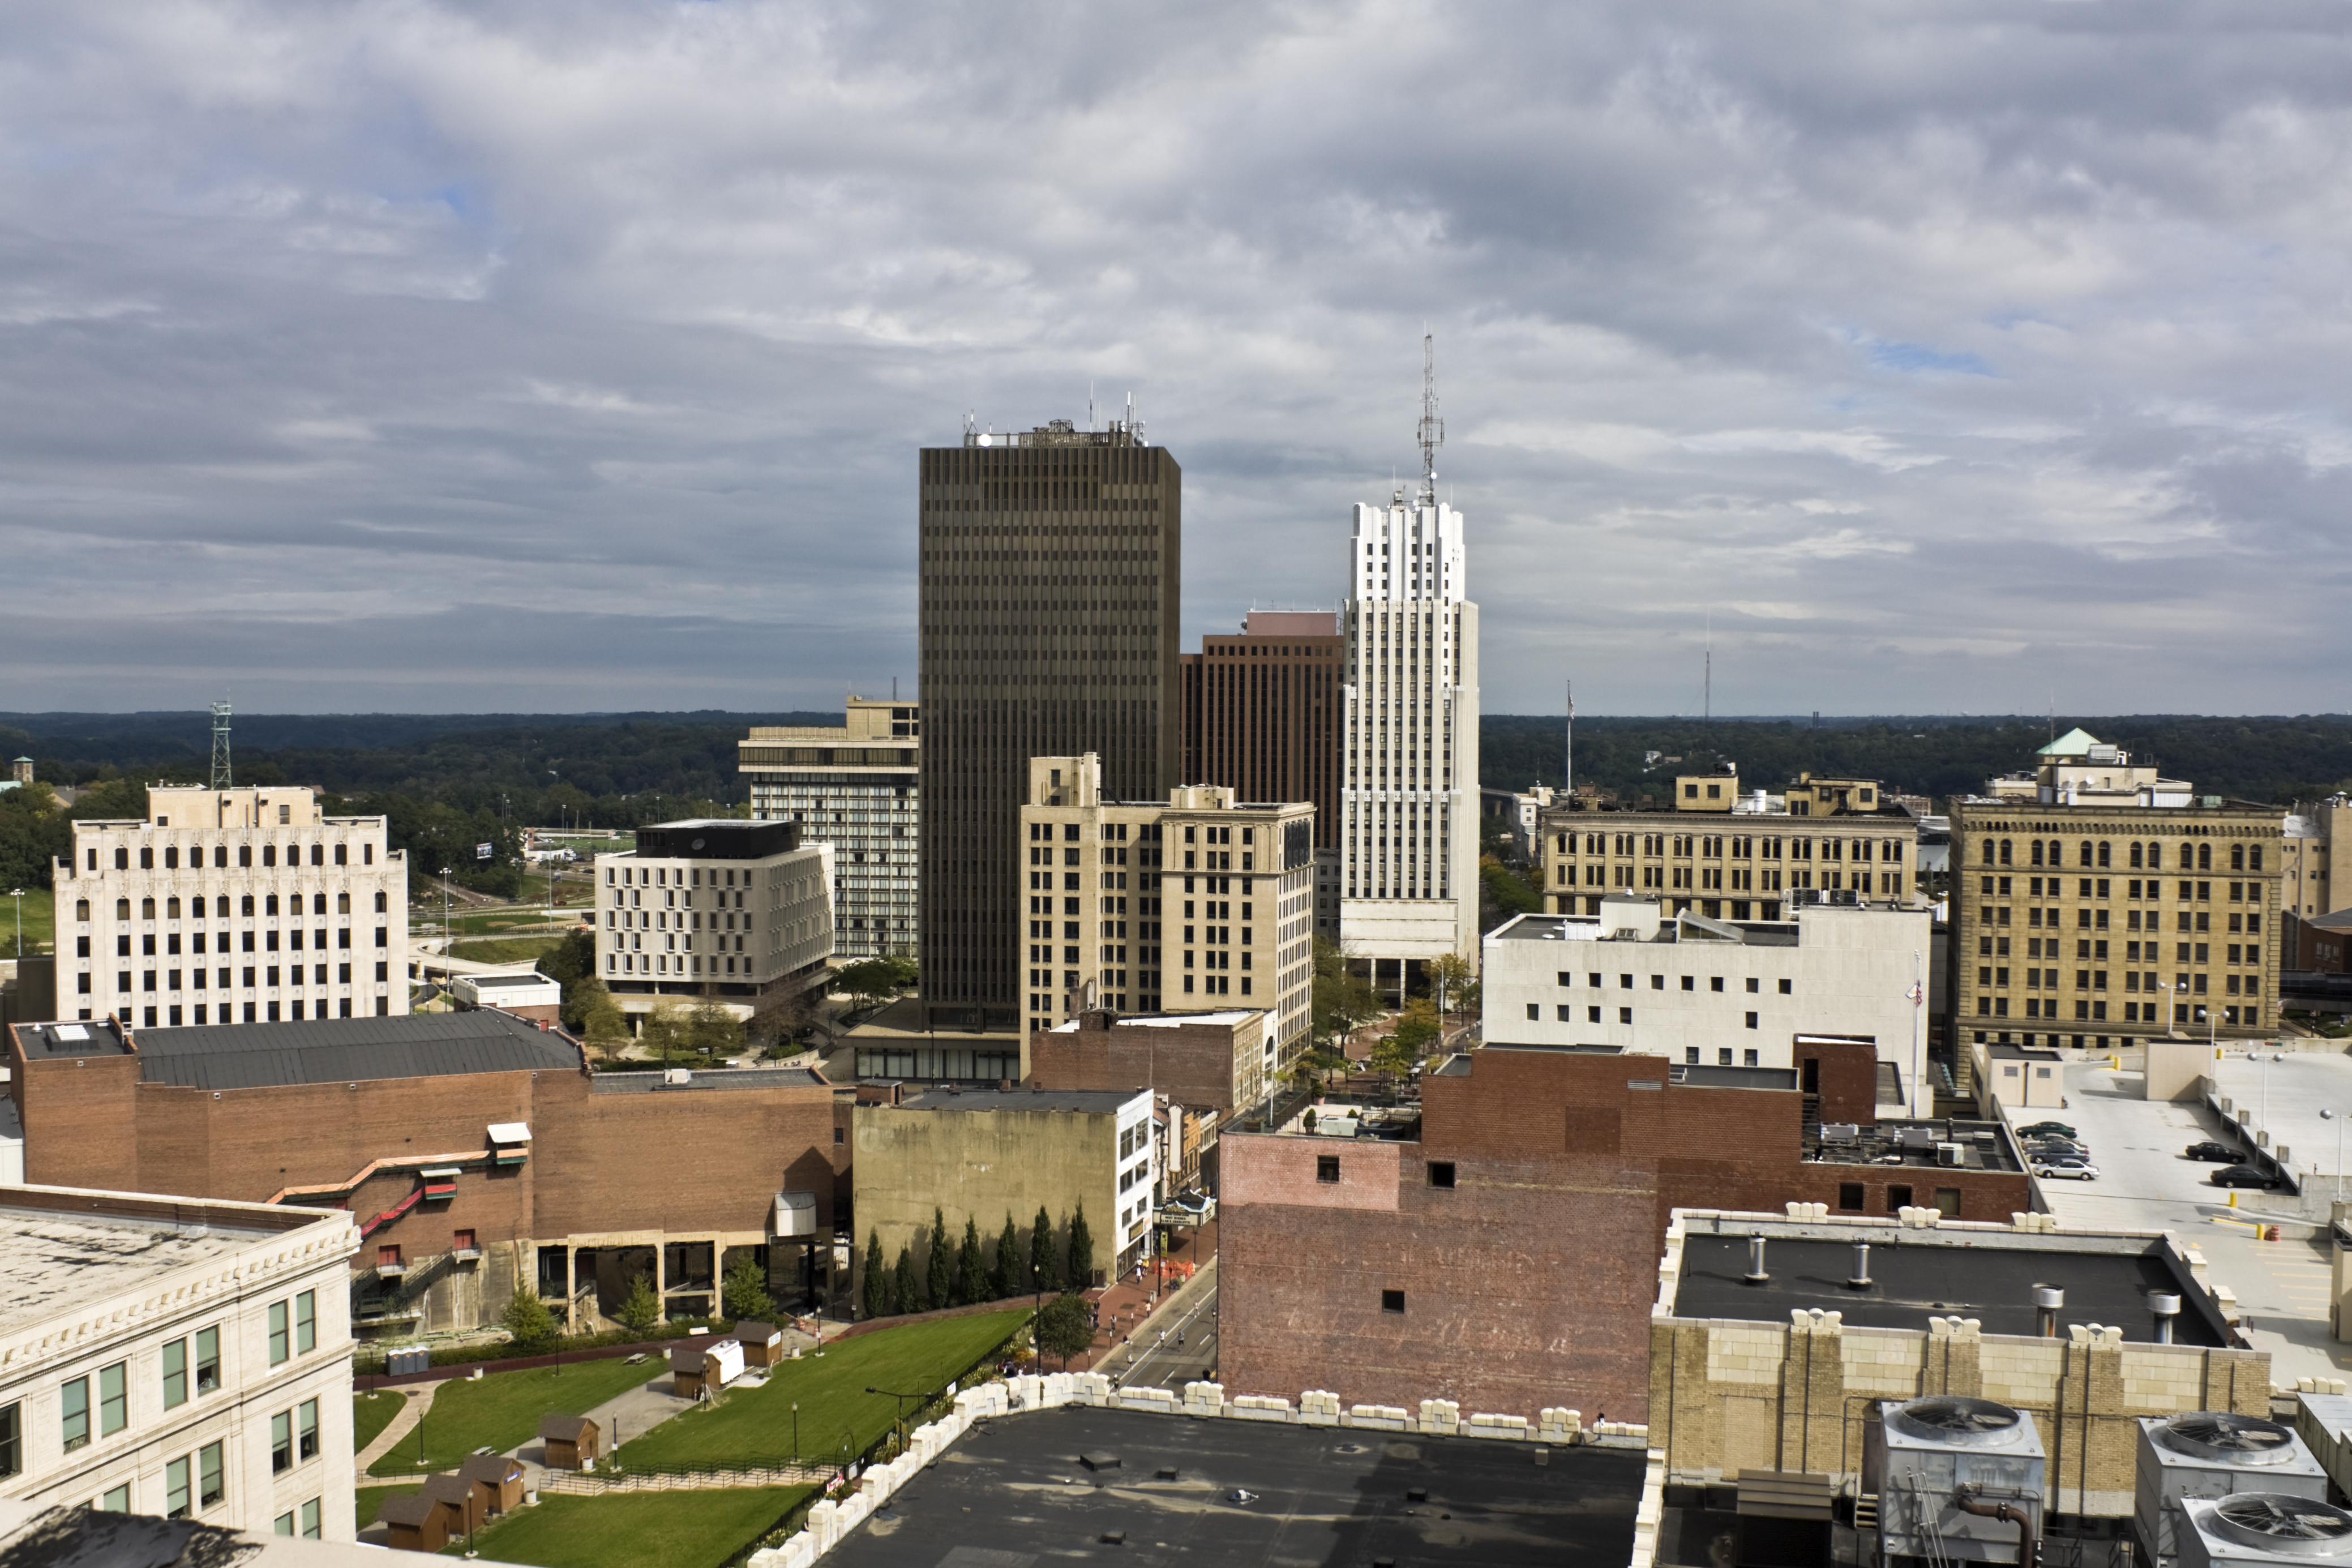 akron ohio downtown buildings skyline air cities oh copley places flag italy crittenden quality urban visit cloudy seen worst during